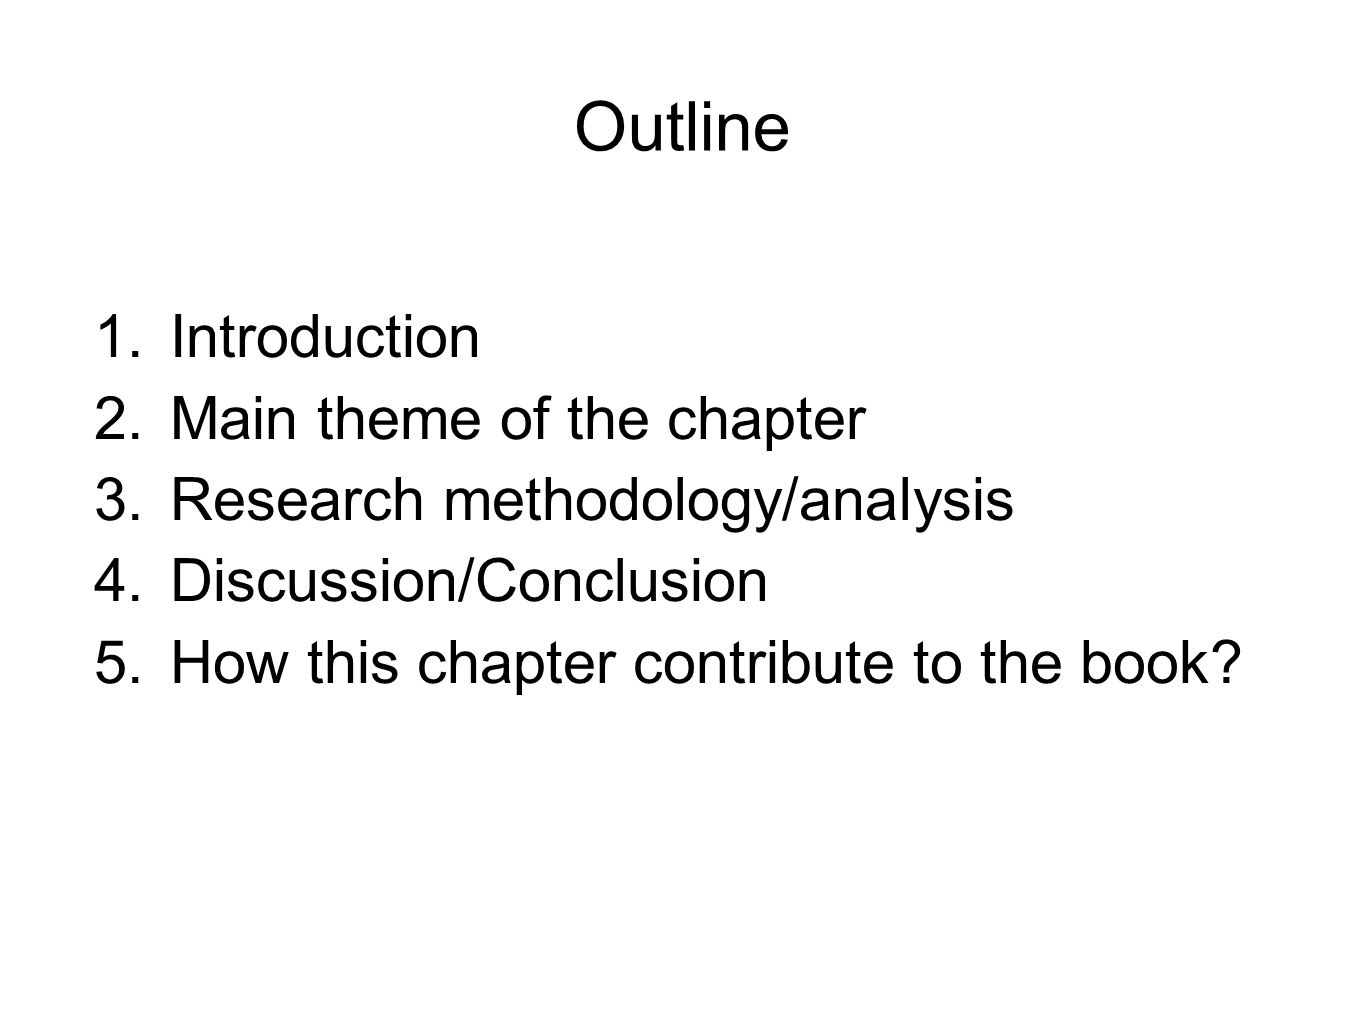 Outline 1.Introduction 2.Main theme of the chapter 3.Research methodology/analysis 4.Discussion/Conclusion 5.How this chapter contribute to the book